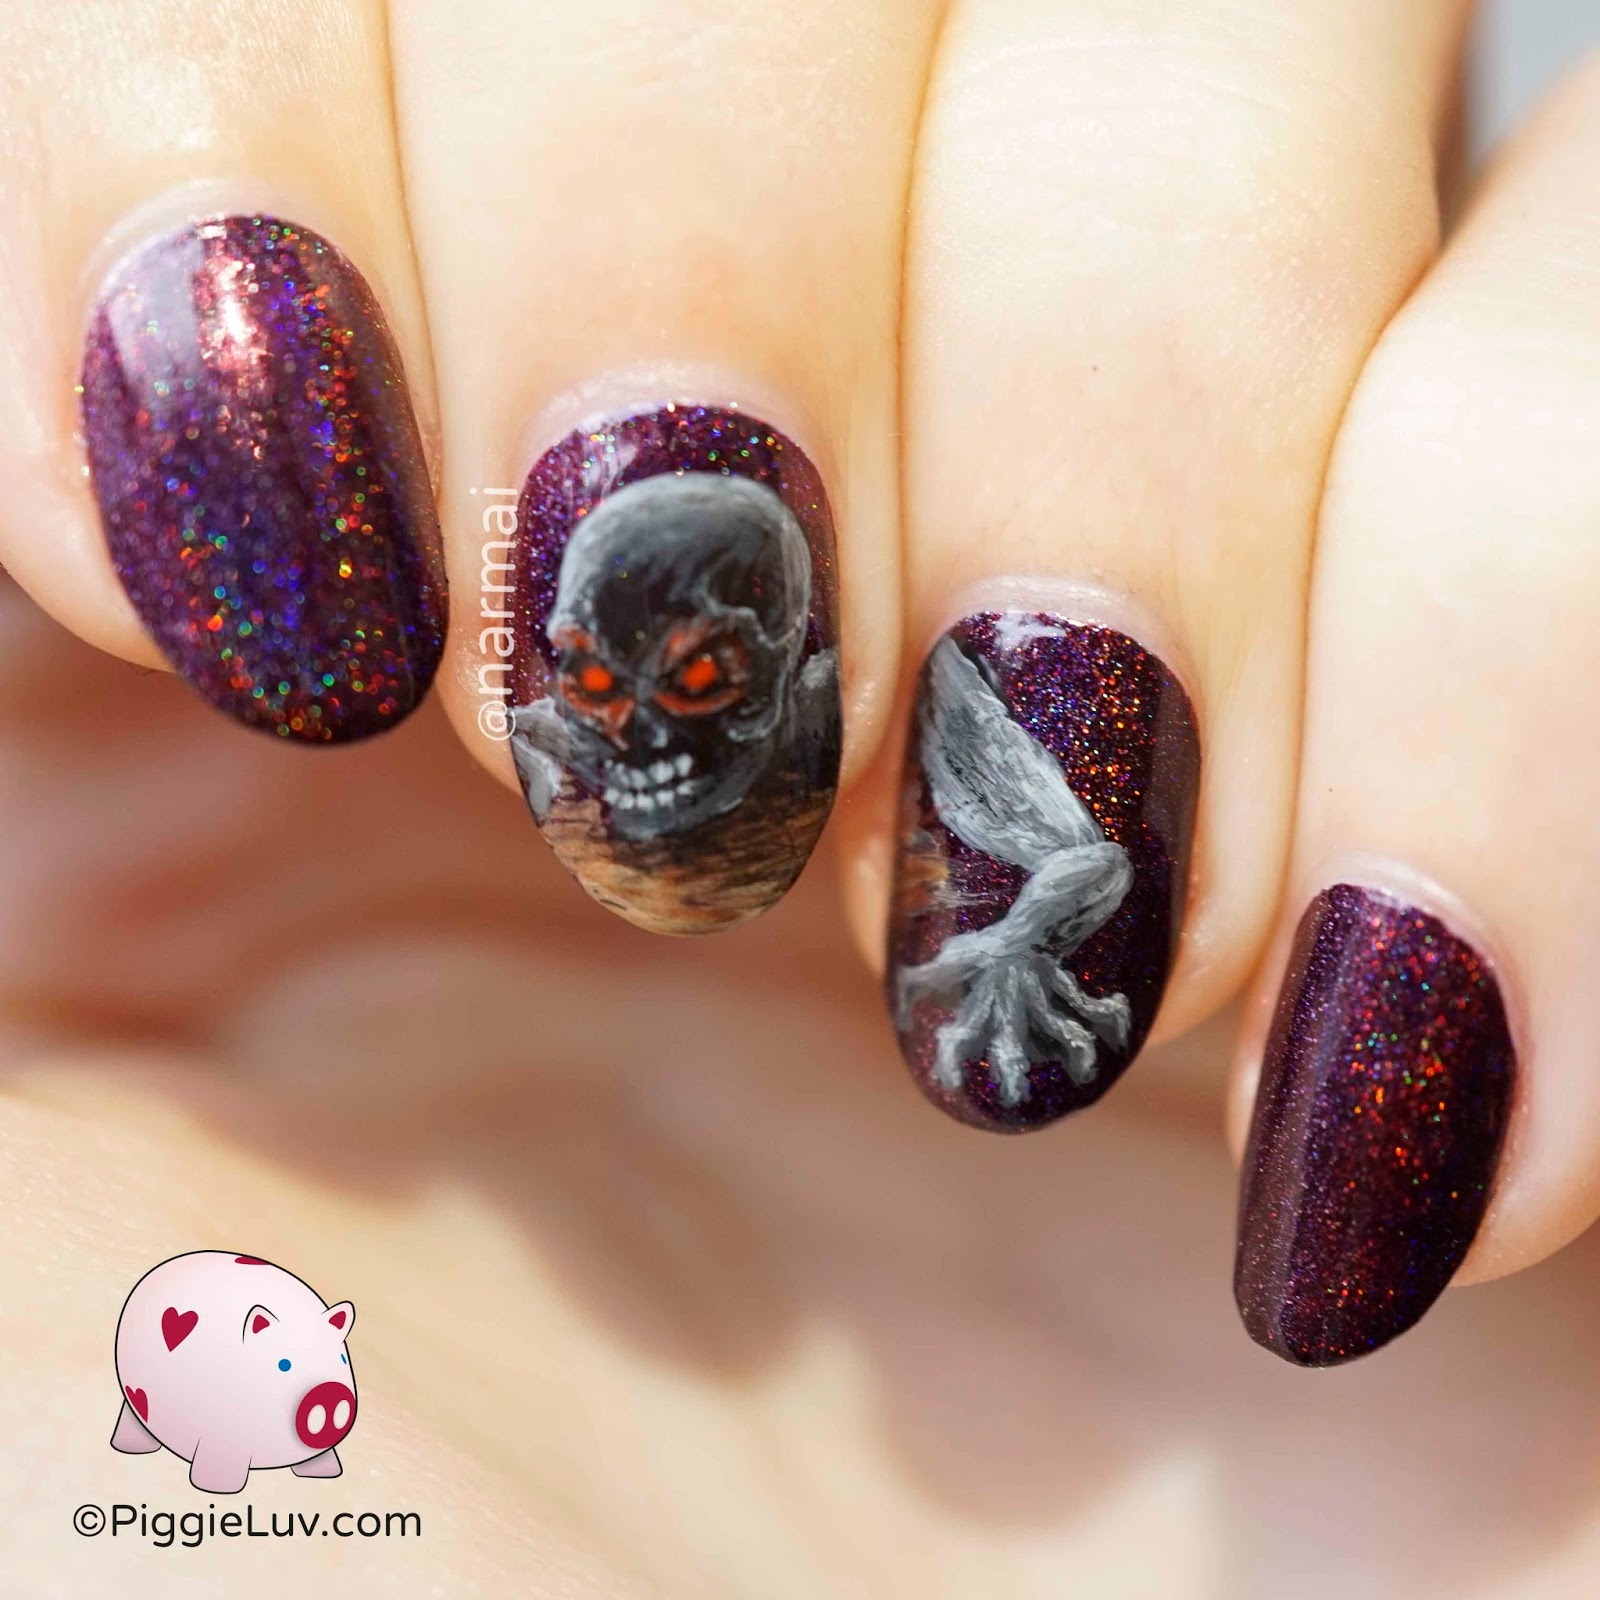 Piggieluv zombie crush nail art for halloween its your friendly neighborhood zombie crawling out of his hole to eat your brains this freak was a lot of fun to paint and also prinsesfo Choice Image